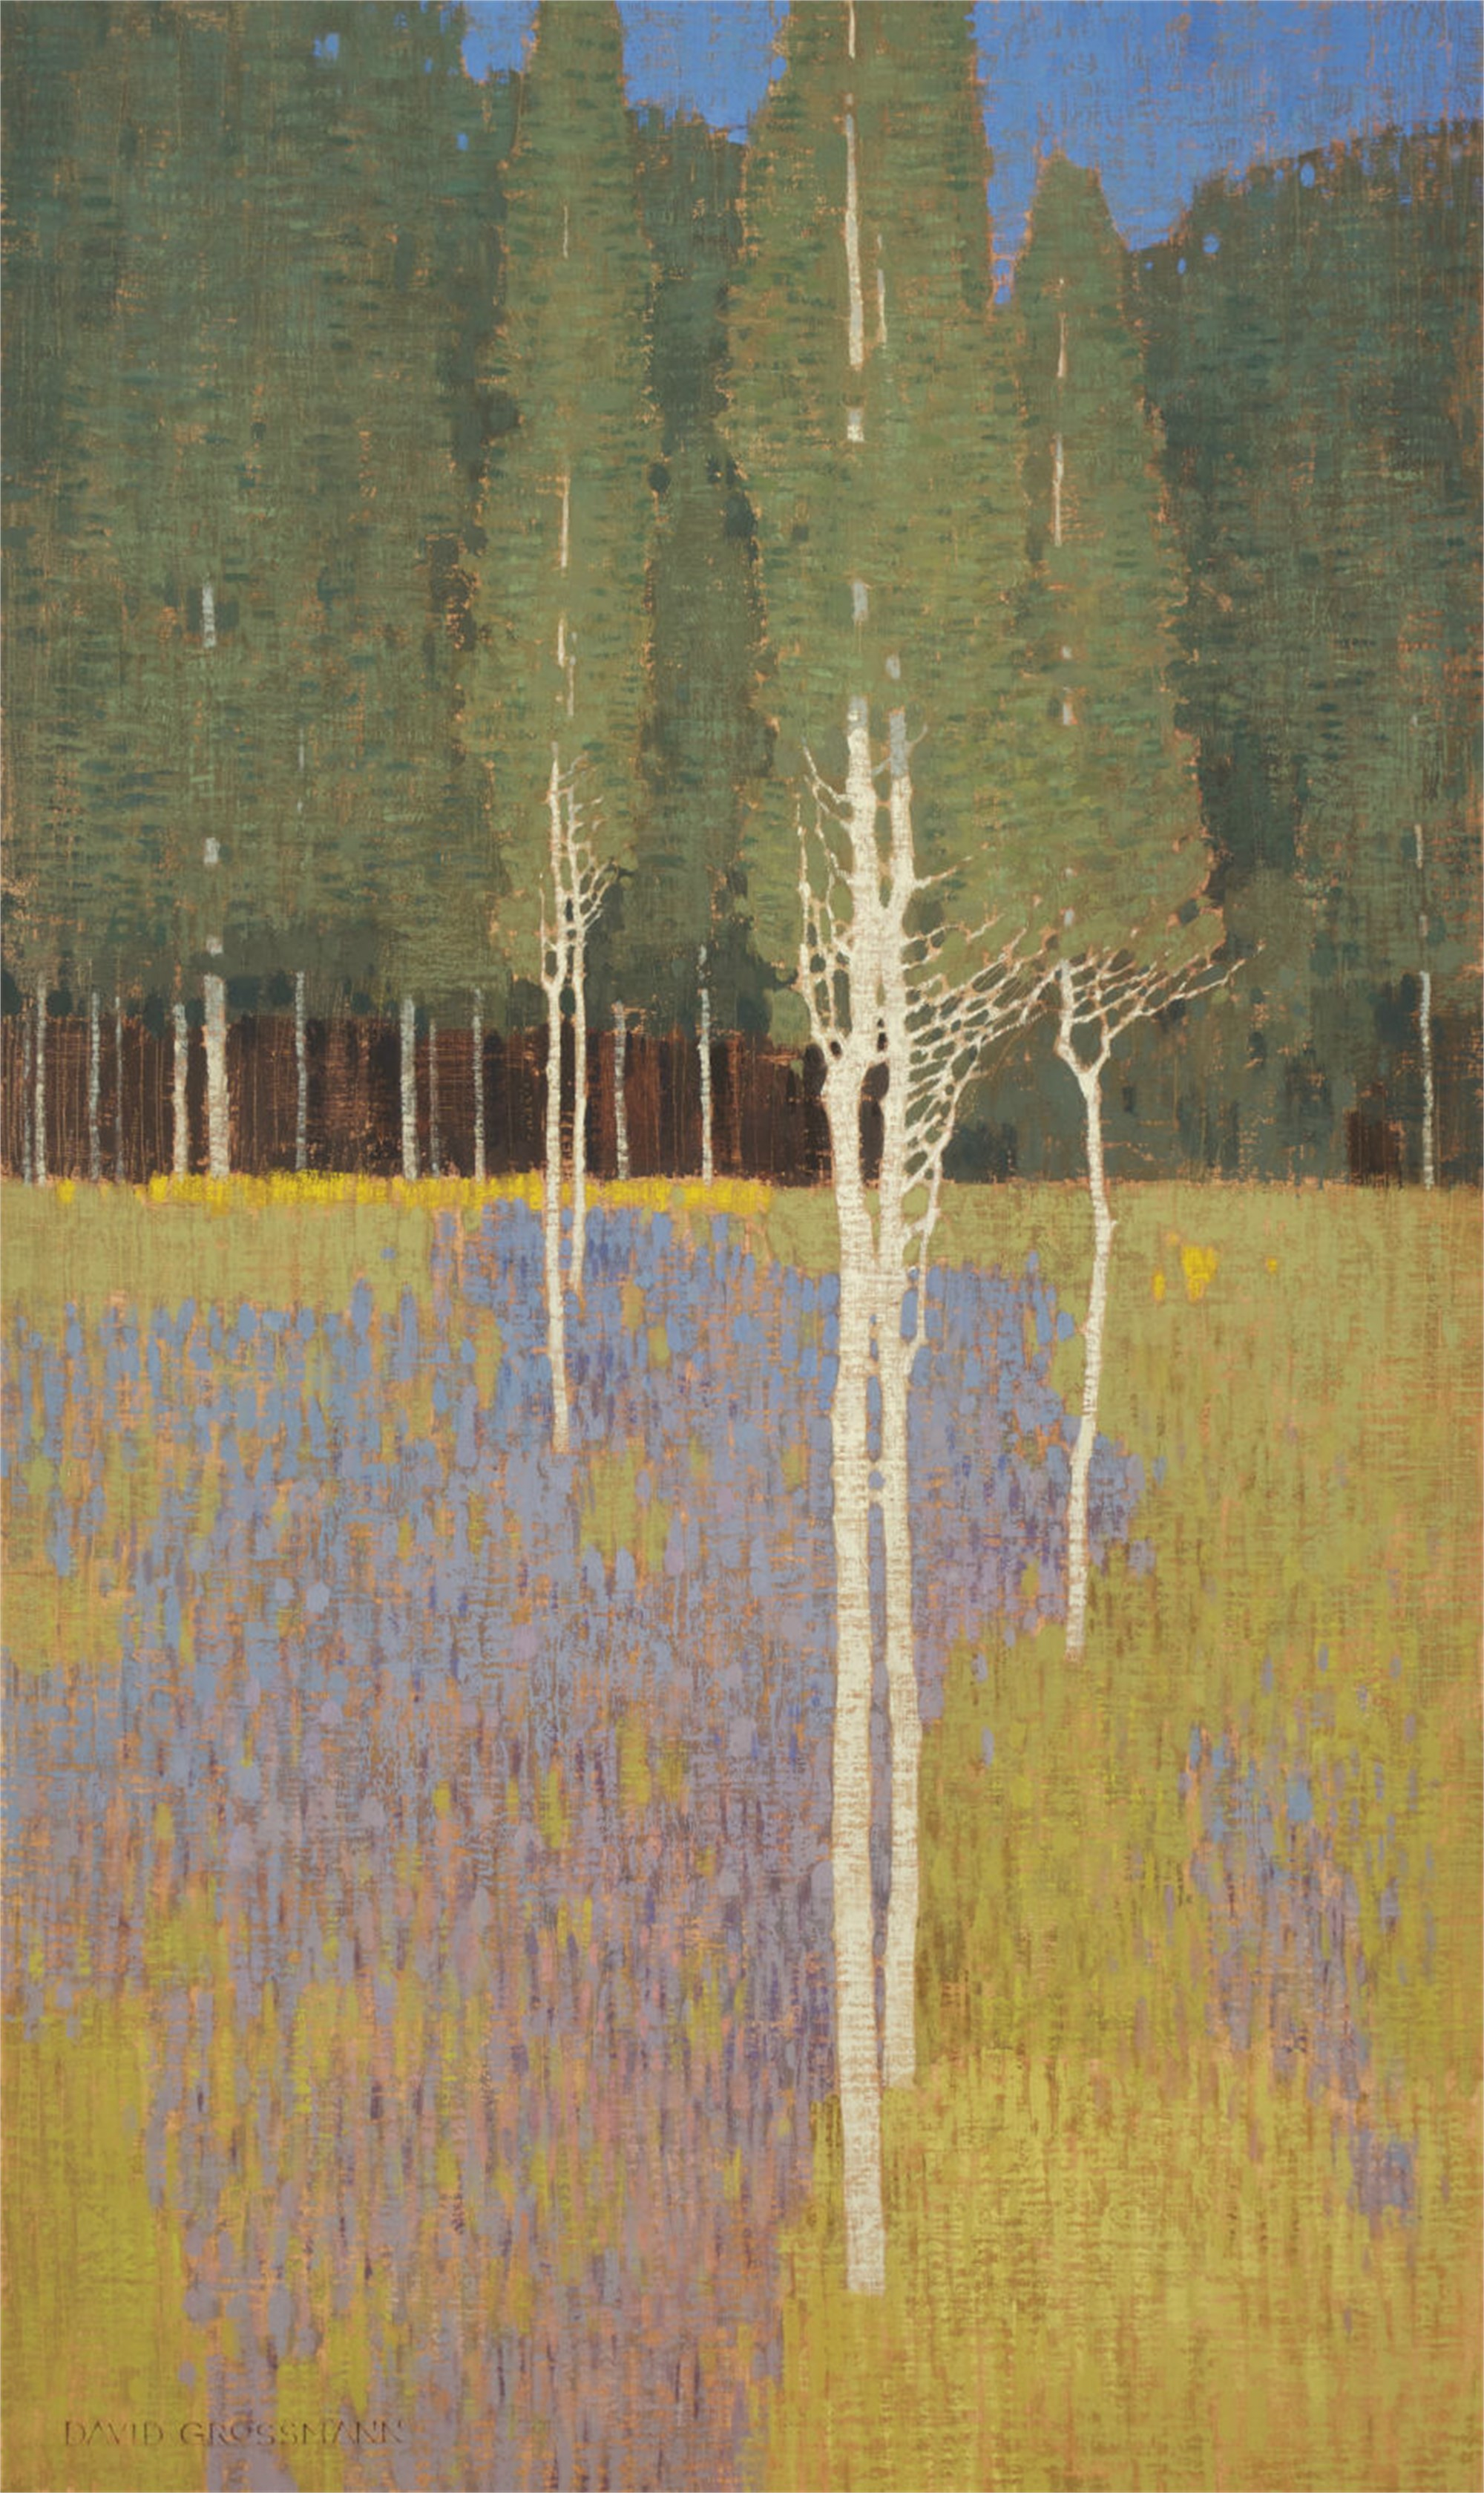 Flower Patterns and Forest Edge Commission by David Grossmann